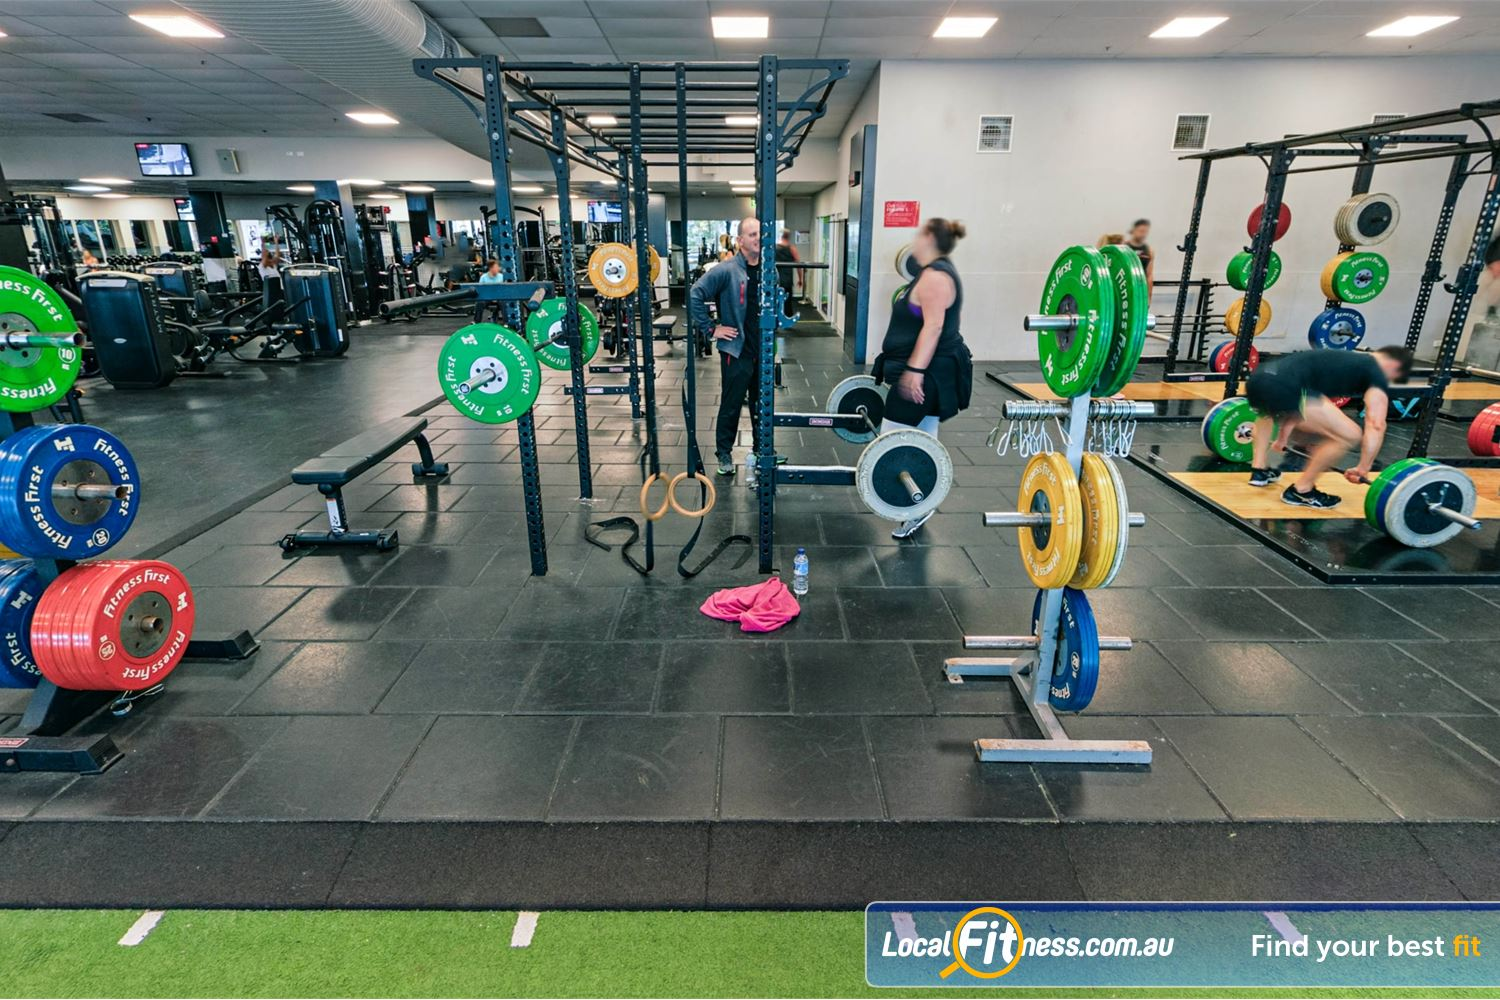 Fitness First Near Oyster Bay Our strength matrix and Olympic lifting platforms are perfect for deadlifting and squats.